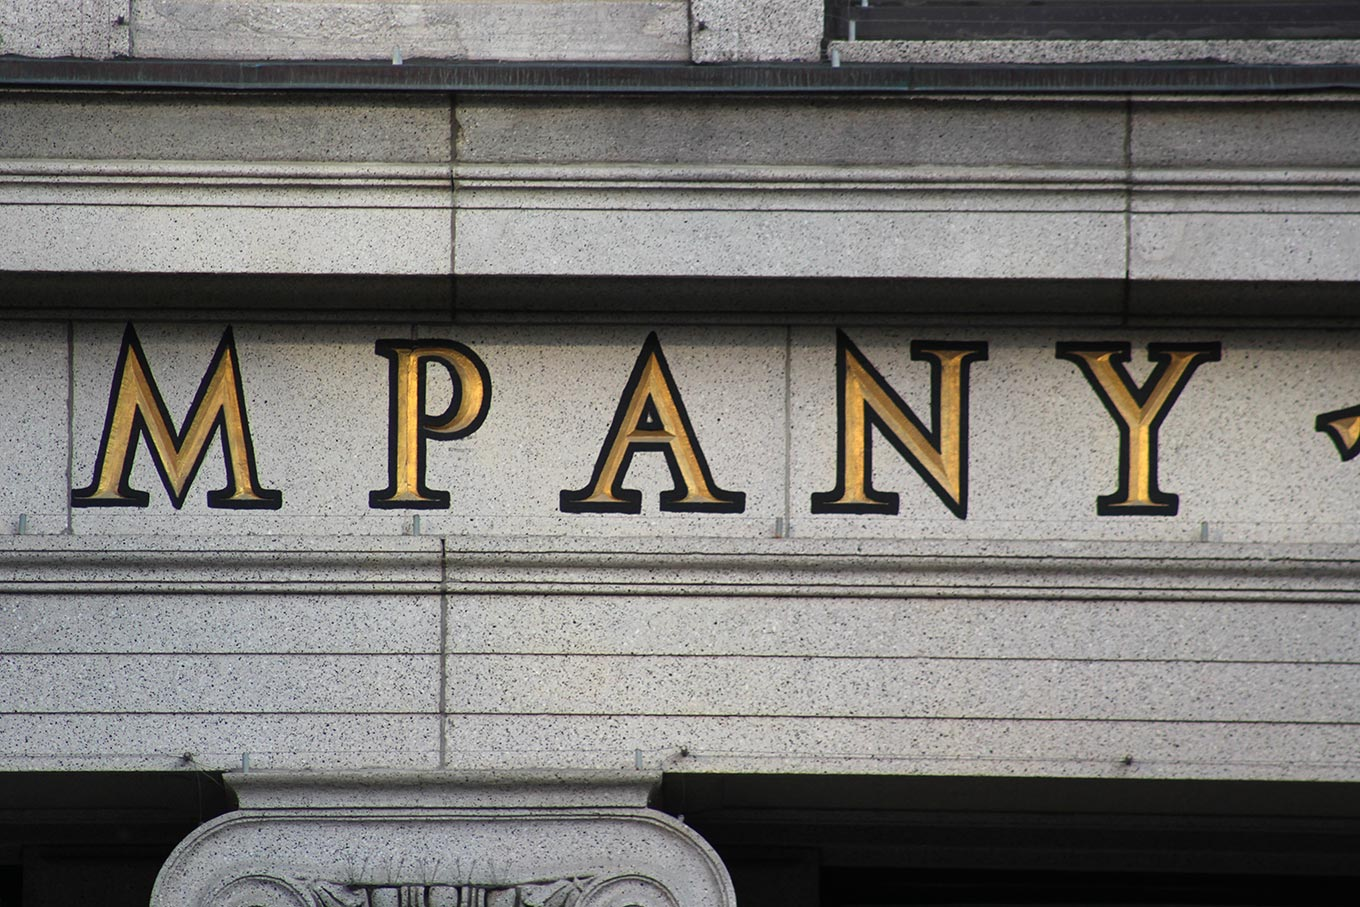 Detail of the inscribed lettering on the facade of the Canada Cement Company Building at 606, rue Cathcart